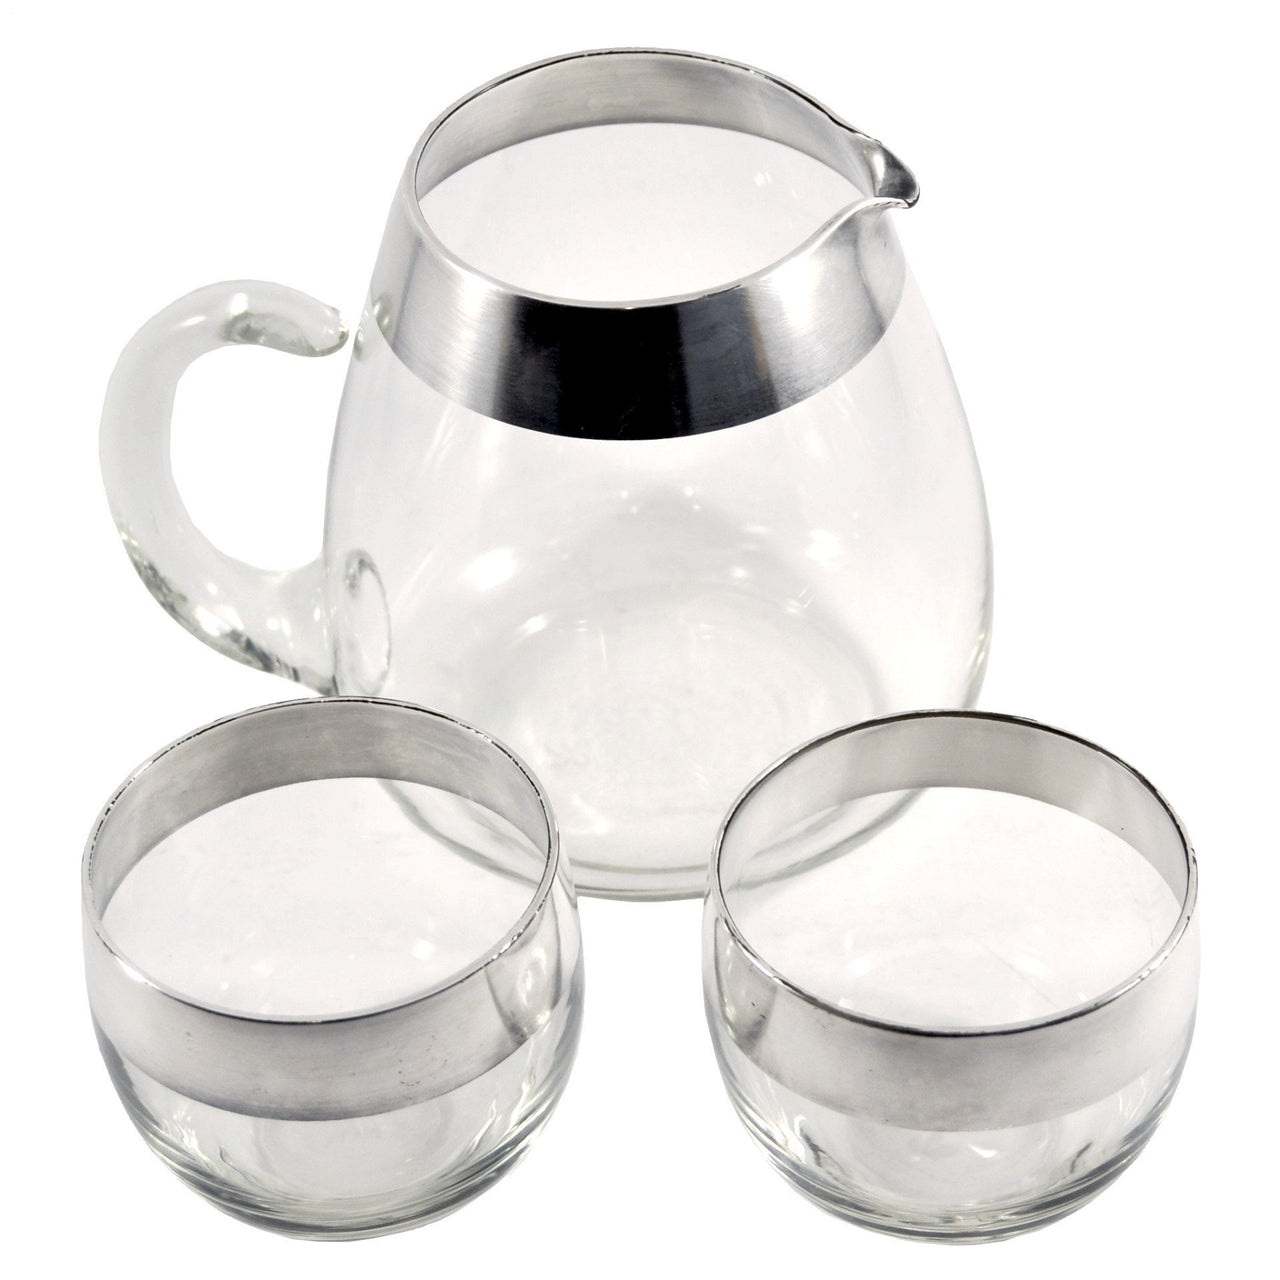 Vintage Dorothy Thorpe 3 Piece Cocktail Pitcher Set, The Hour